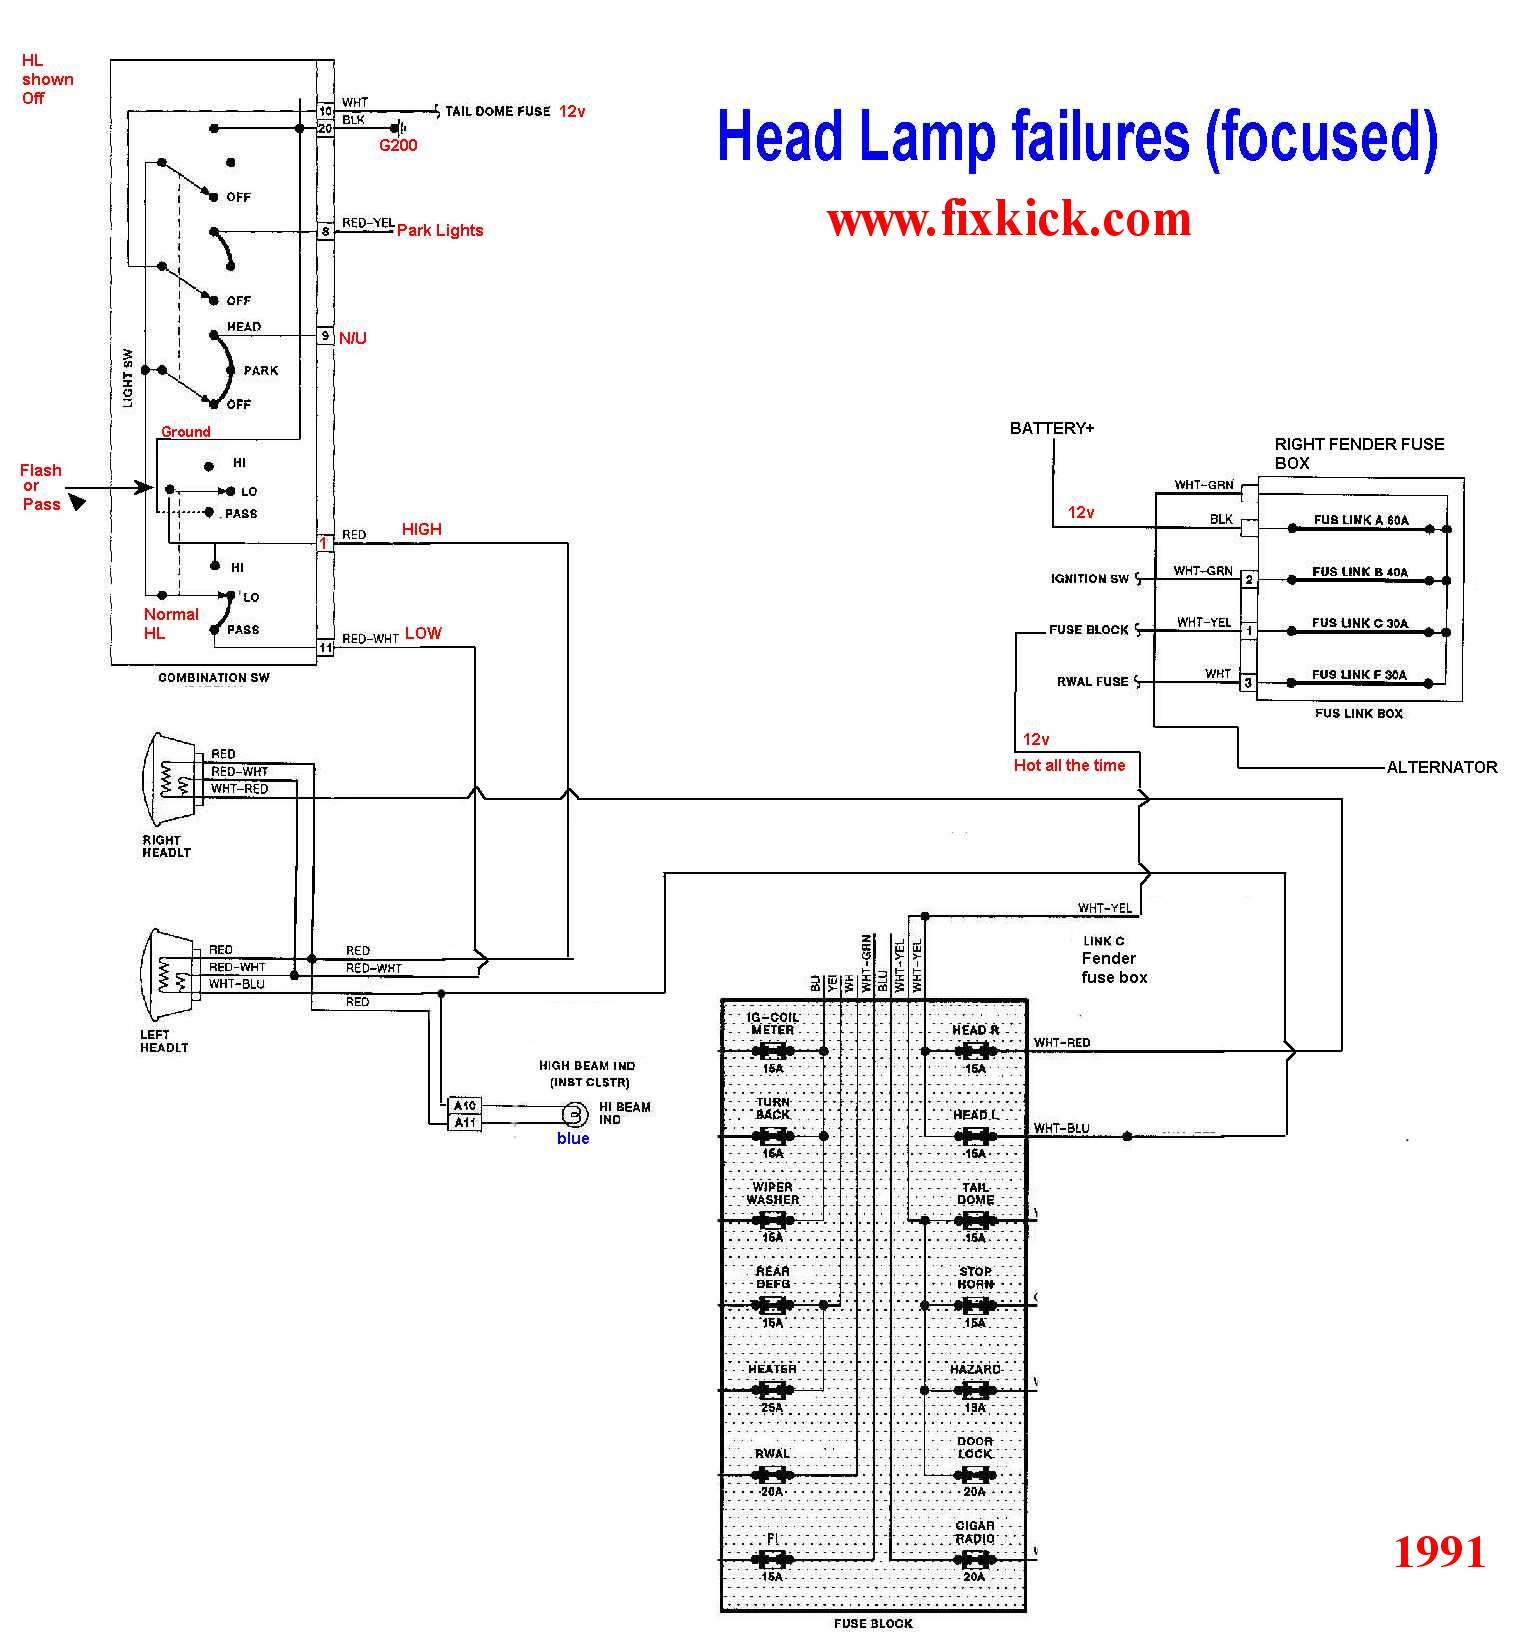 HL1A suzuki radio wiring diagram suzuki wiring diagrams instruction suzuki samurai radio wiring diagram at soozxer.org